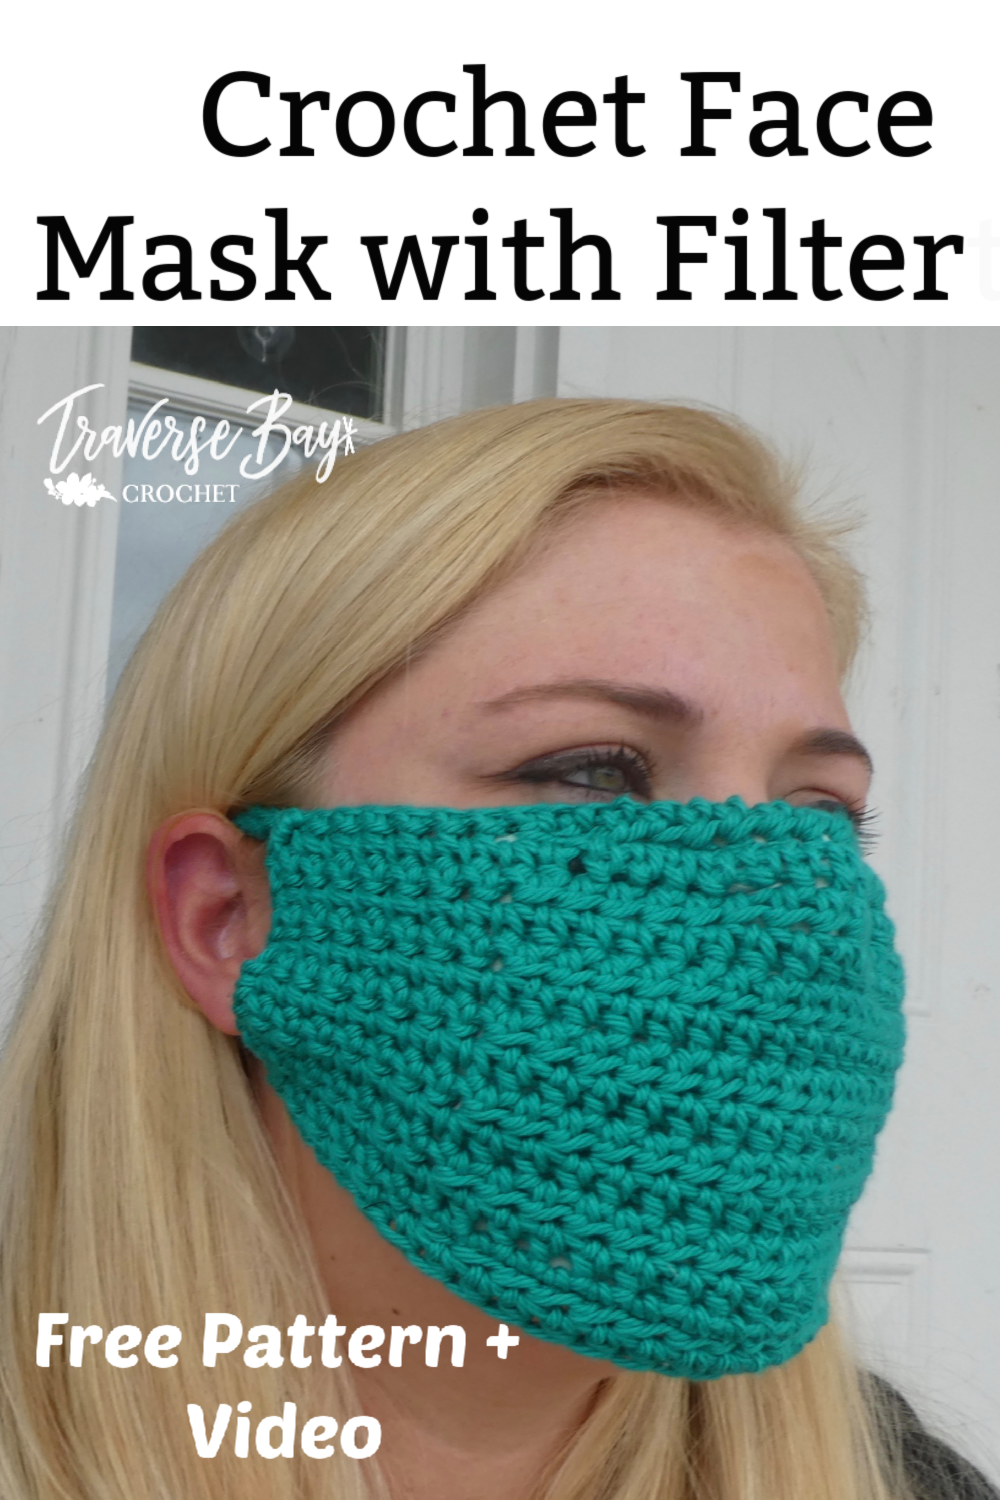 Easy DIY Crochet Face Mask with Filter easy crochet face